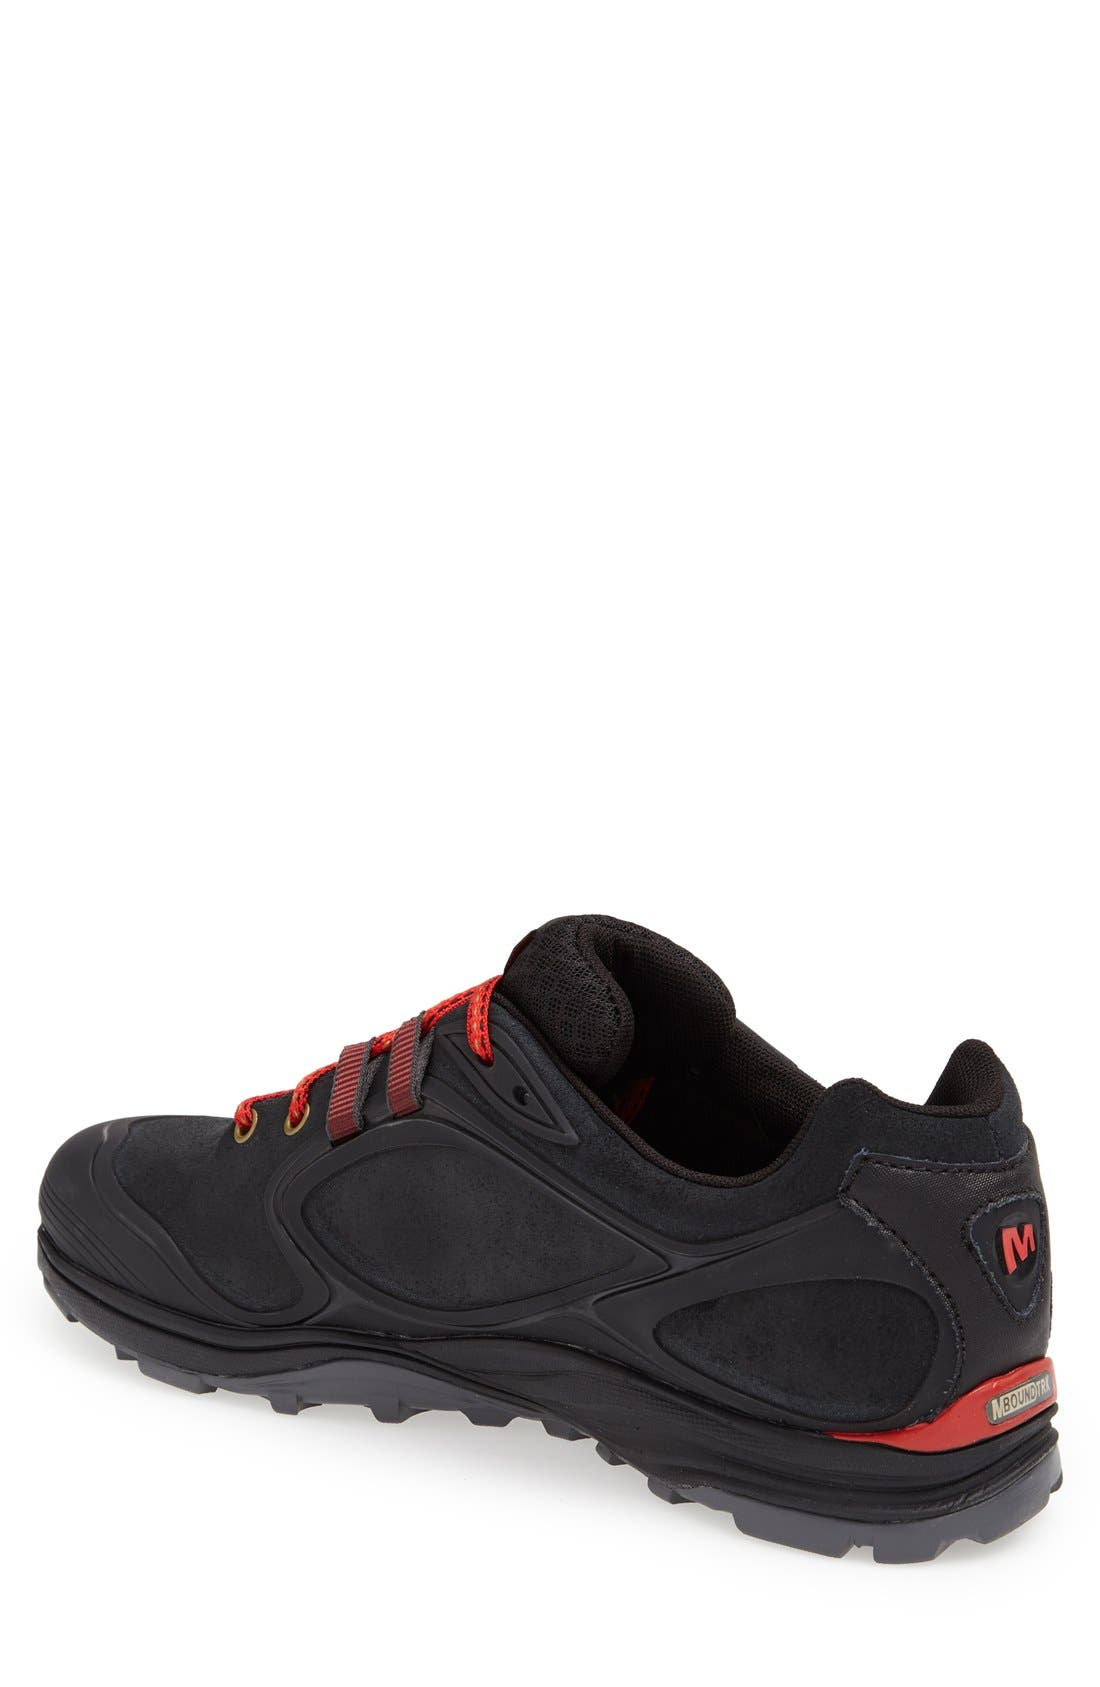 Alternate Image 2  - Merrell 'Verterra' Waterproof Hiking Shoe (Men)